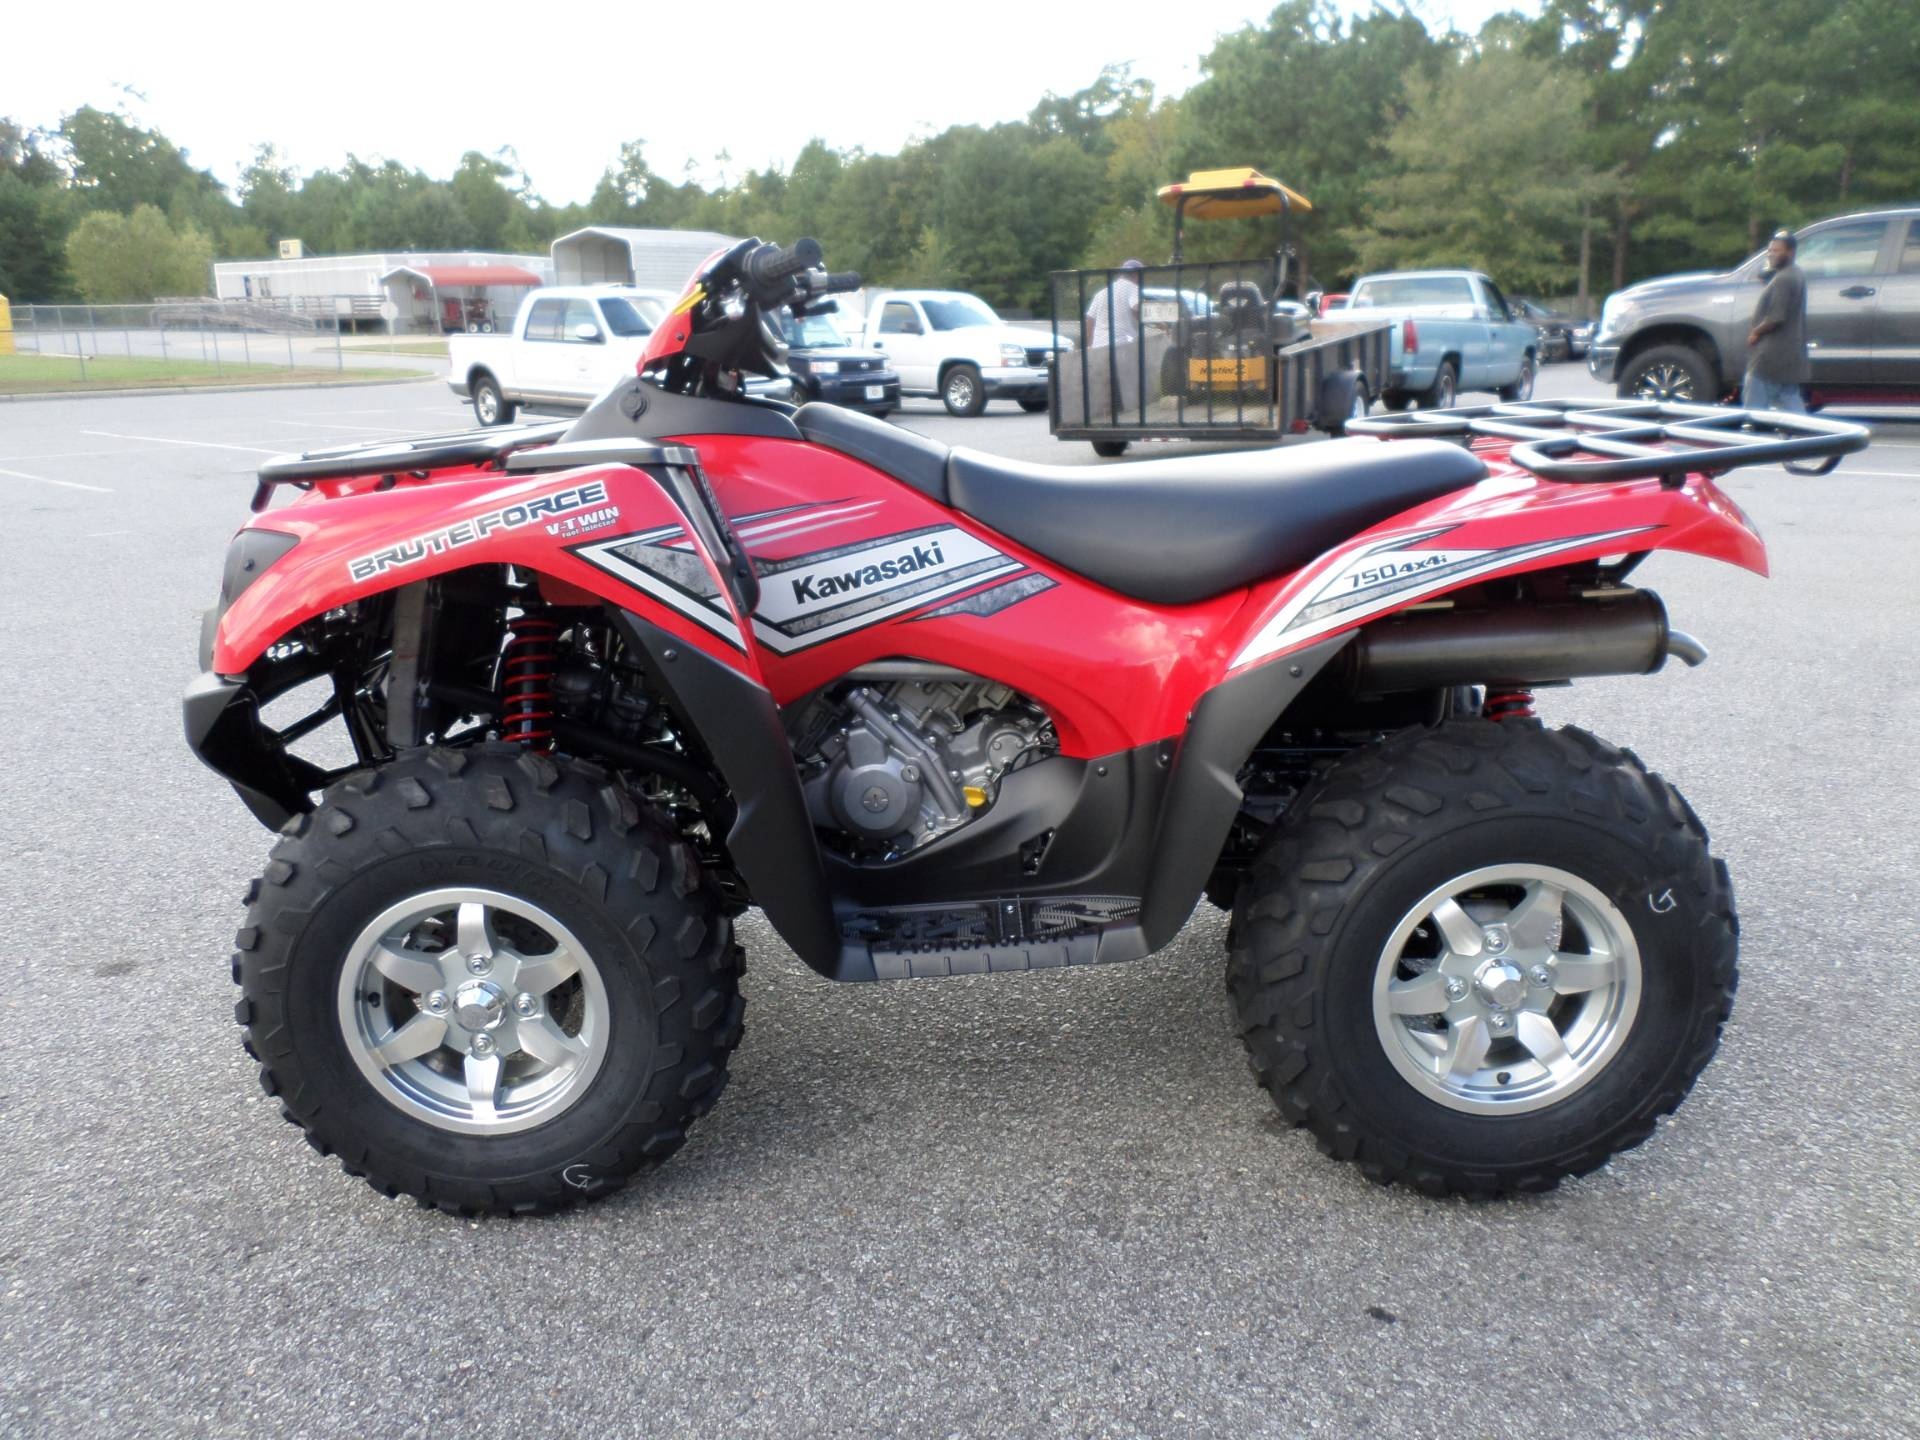 Scooters For Sale Greenville Nc >> 2017 Kawasaki Brute Force 750 – Bike Gallery